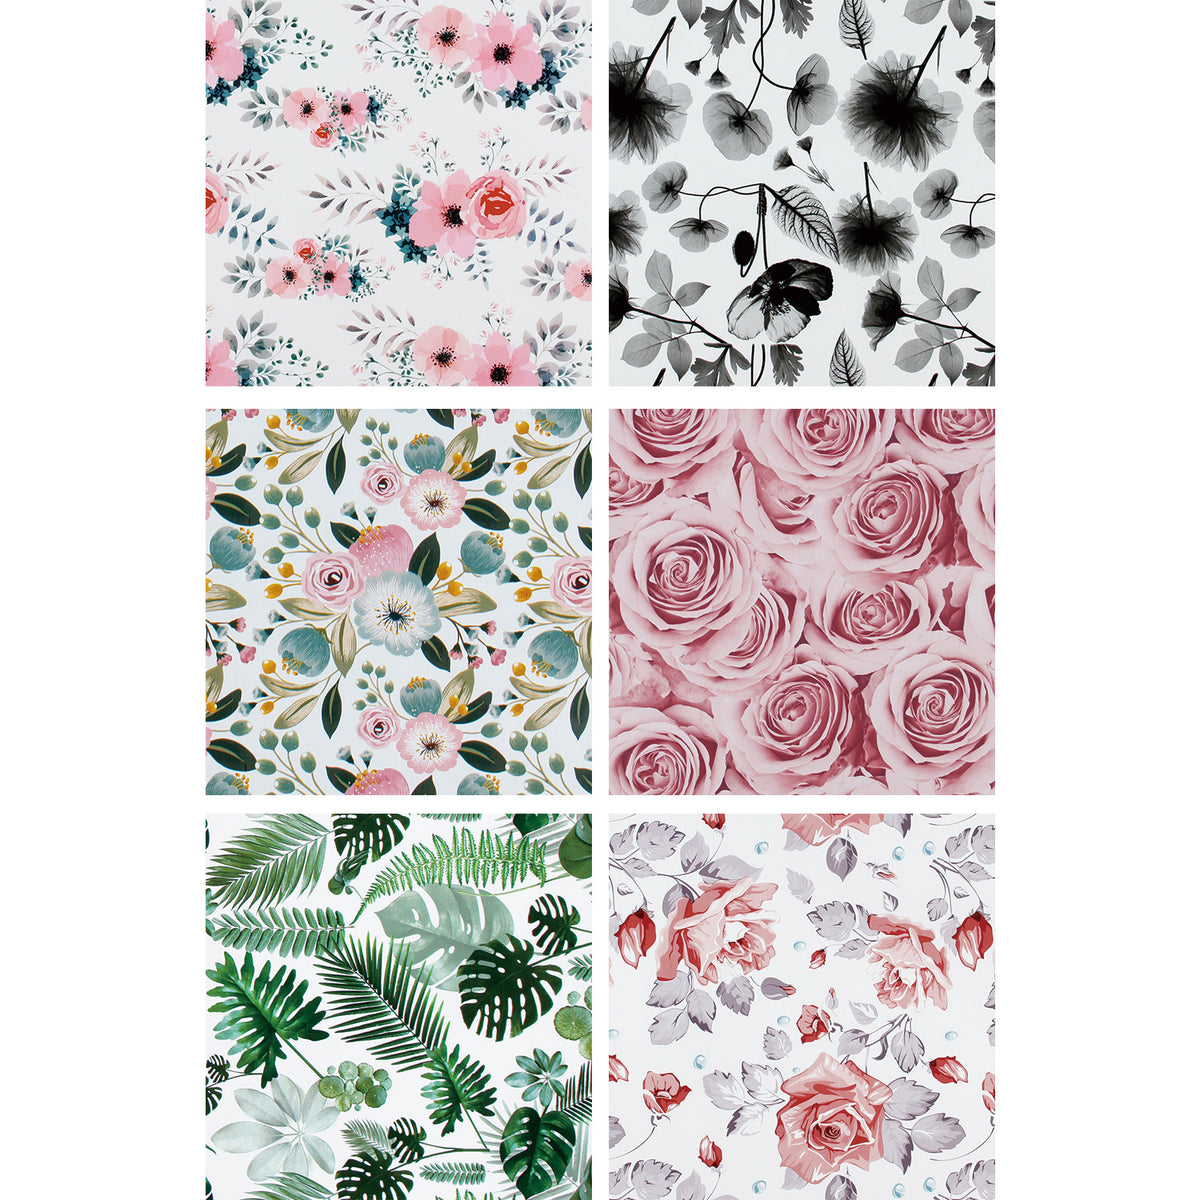 Wrapaholic-Spring-Flower-Wrapping-Paper-Roll-6-Rolls-Set-2